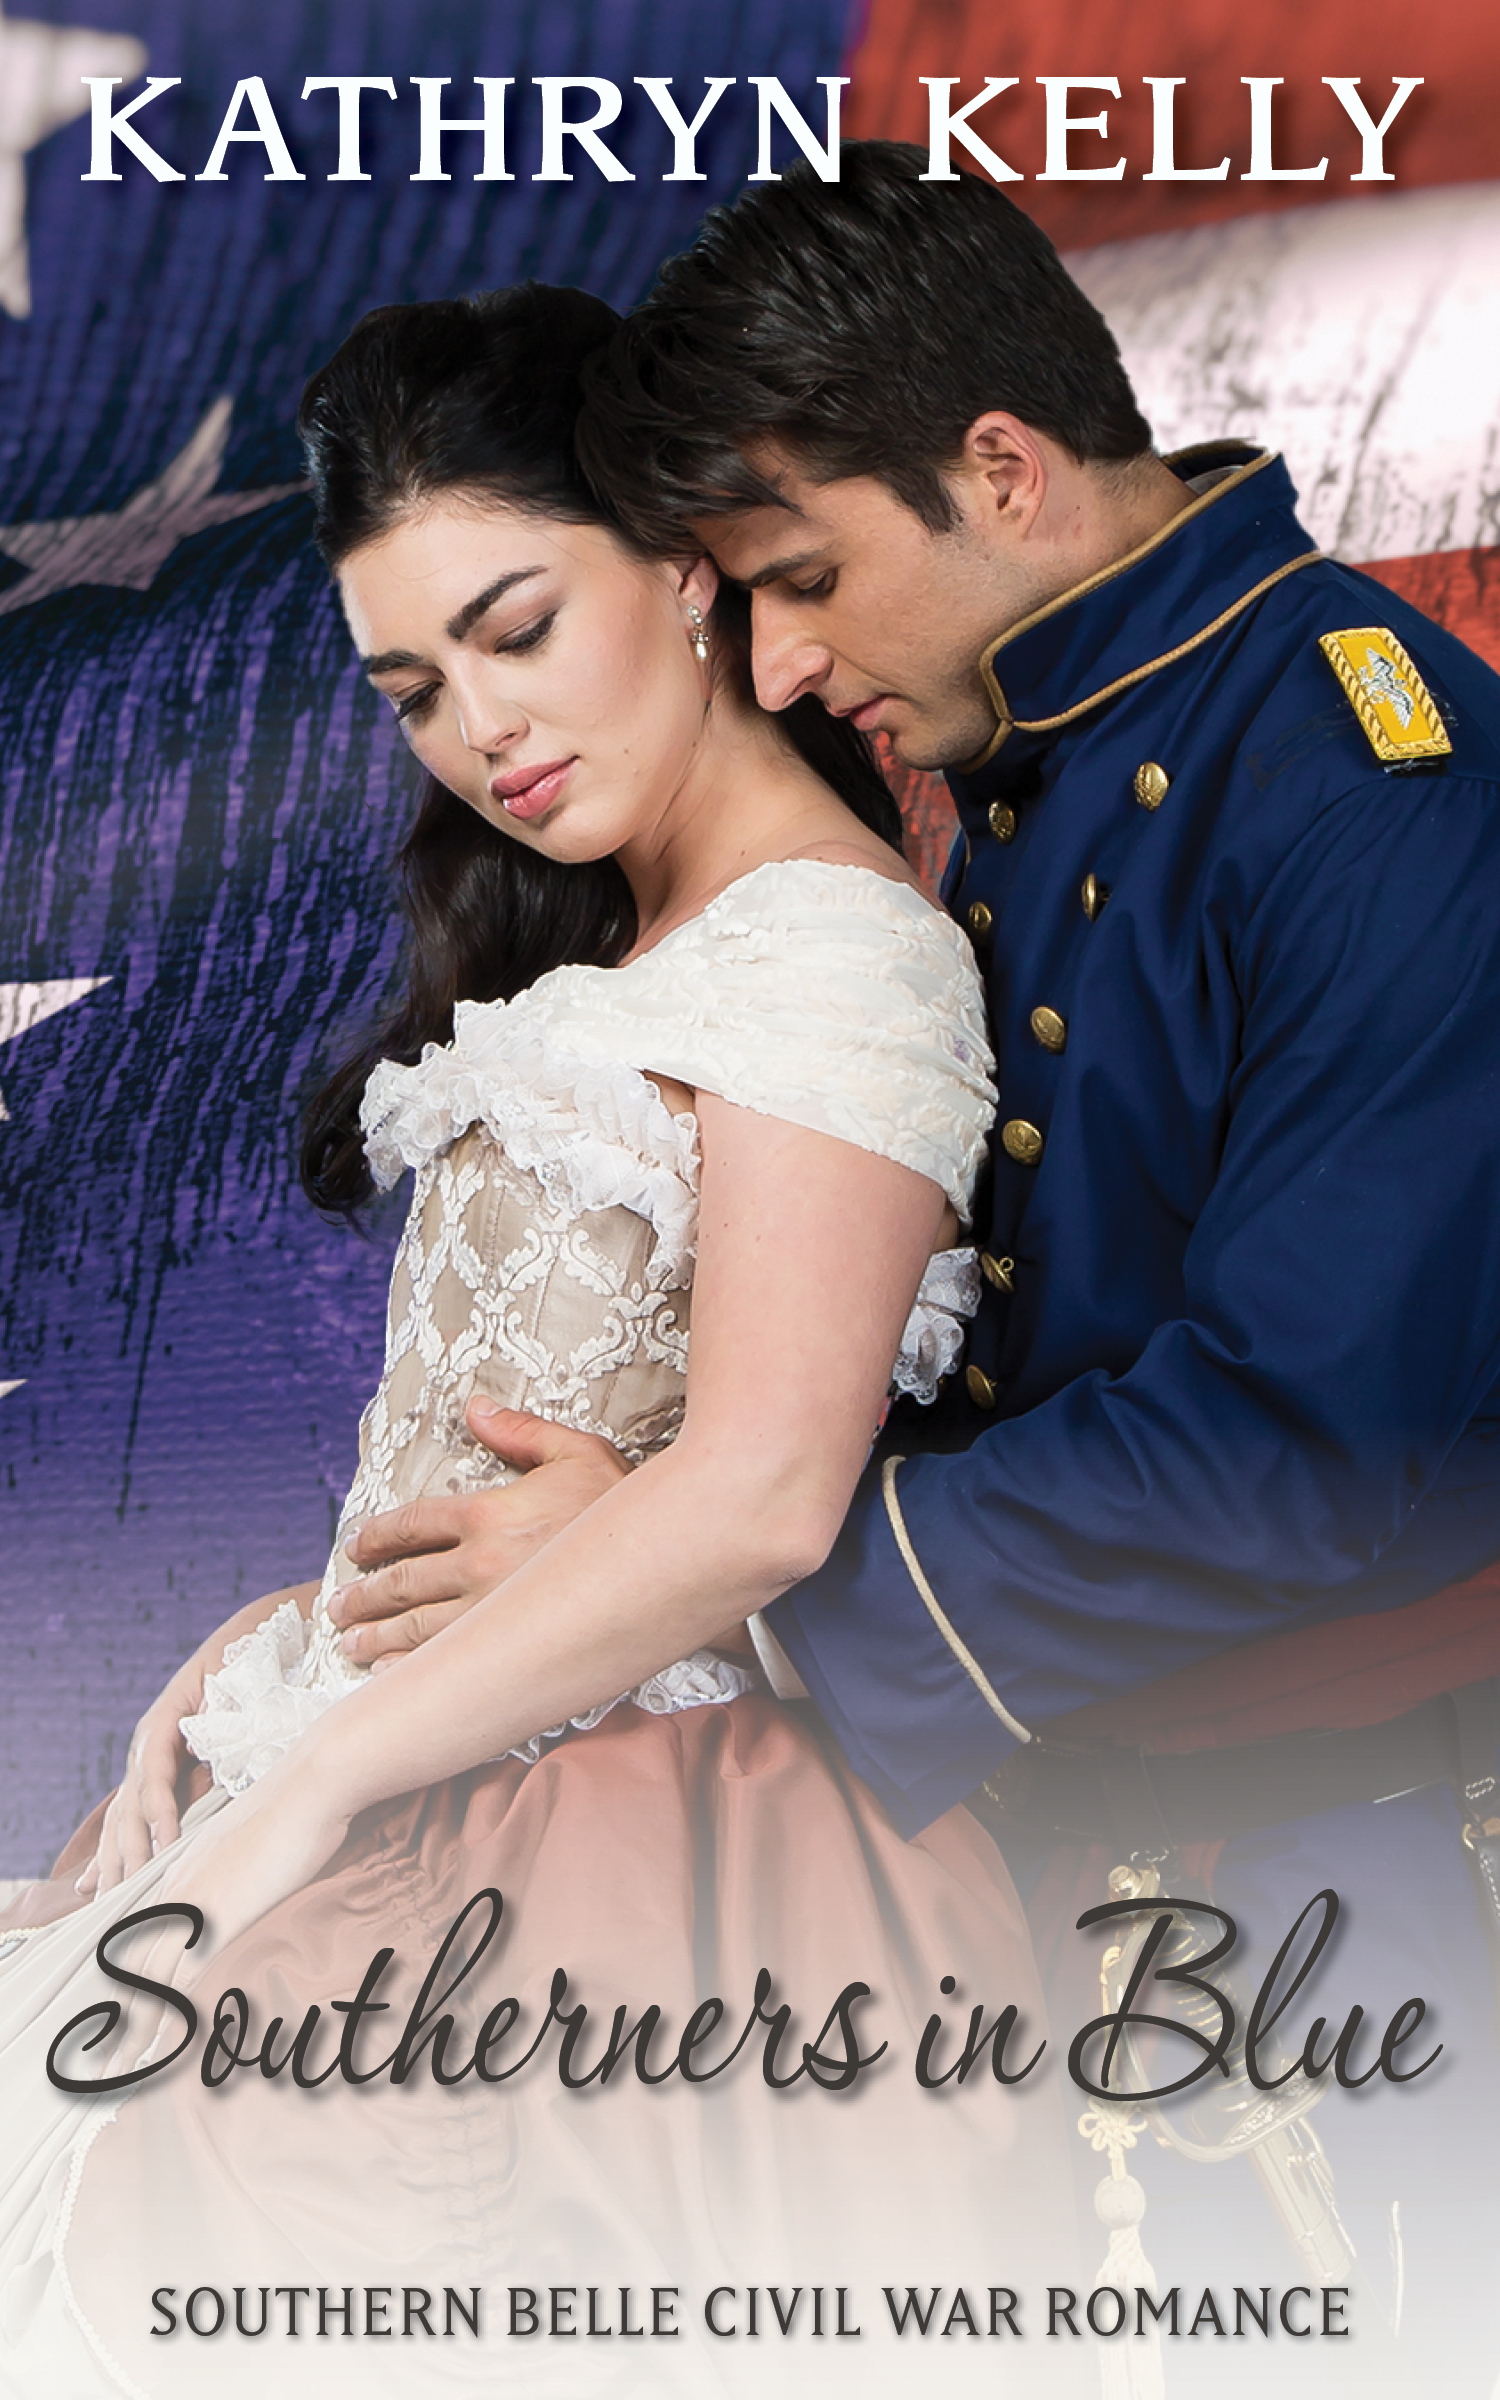 Southerners in Blue - The Civil War had ended, sending soldiers home in swarms.Abigail Sutton's sister needed her quickly. Even so, the Sultana traveled too fast.Abigail knew enough about steamboats to know the captain took a huge risk. Would it be too much?A standalone story that revolves around characters in the Civil War Southern Belle historical romance series.